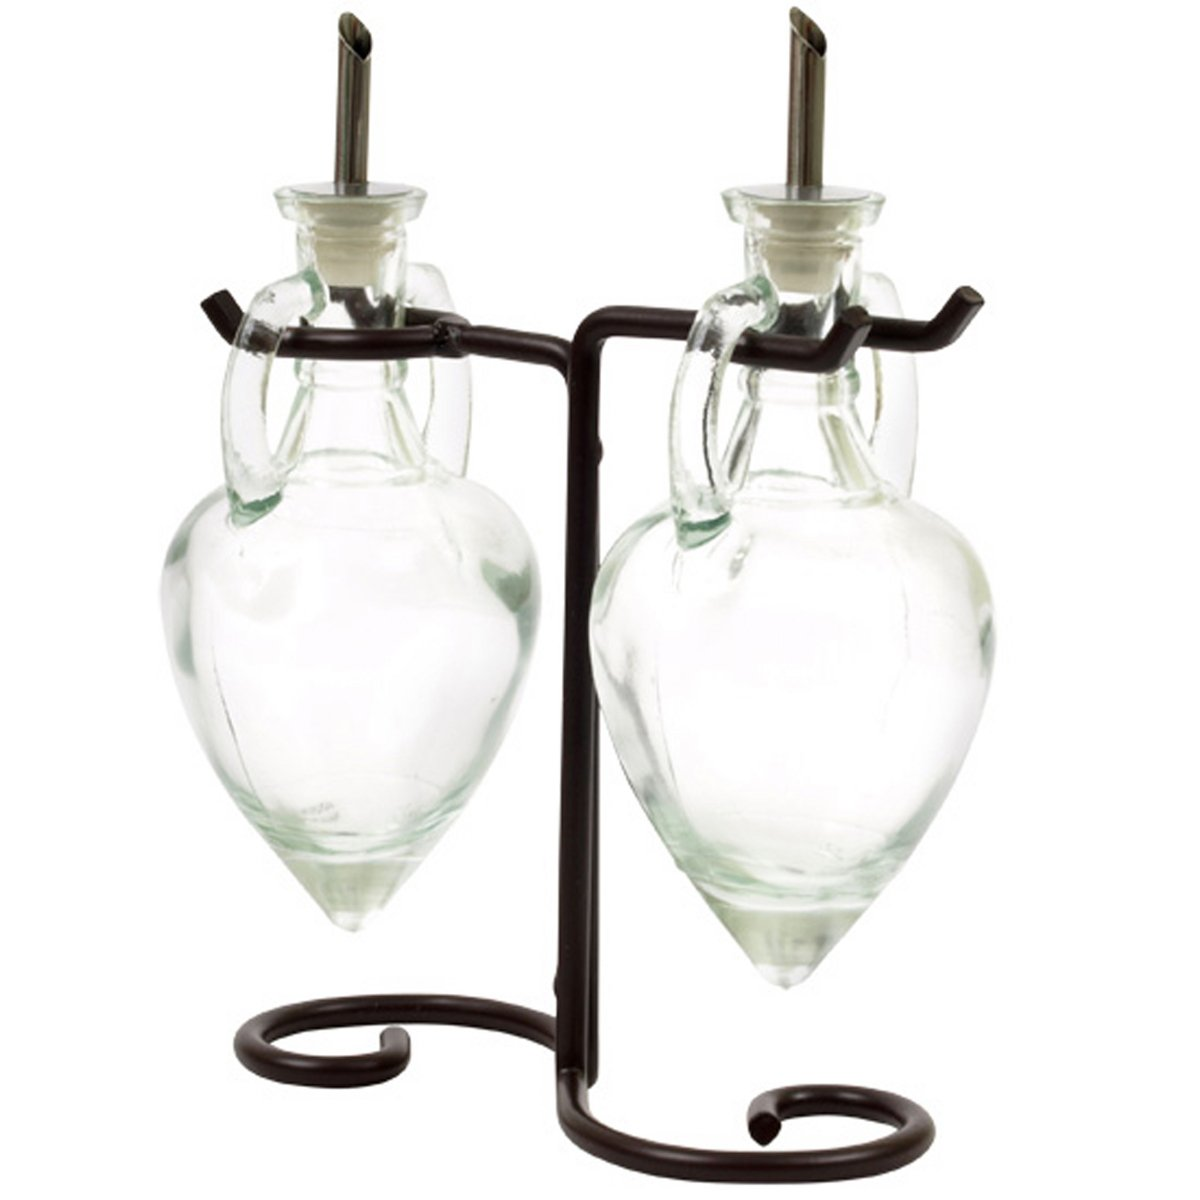 Clear G223VF Olive Oil Vinegar Dish Wash Soap Dispensers, Decorative Colored Glass Cruet Bottles with Cork, Spout and Black Metal Stand. Romantic Decor & More